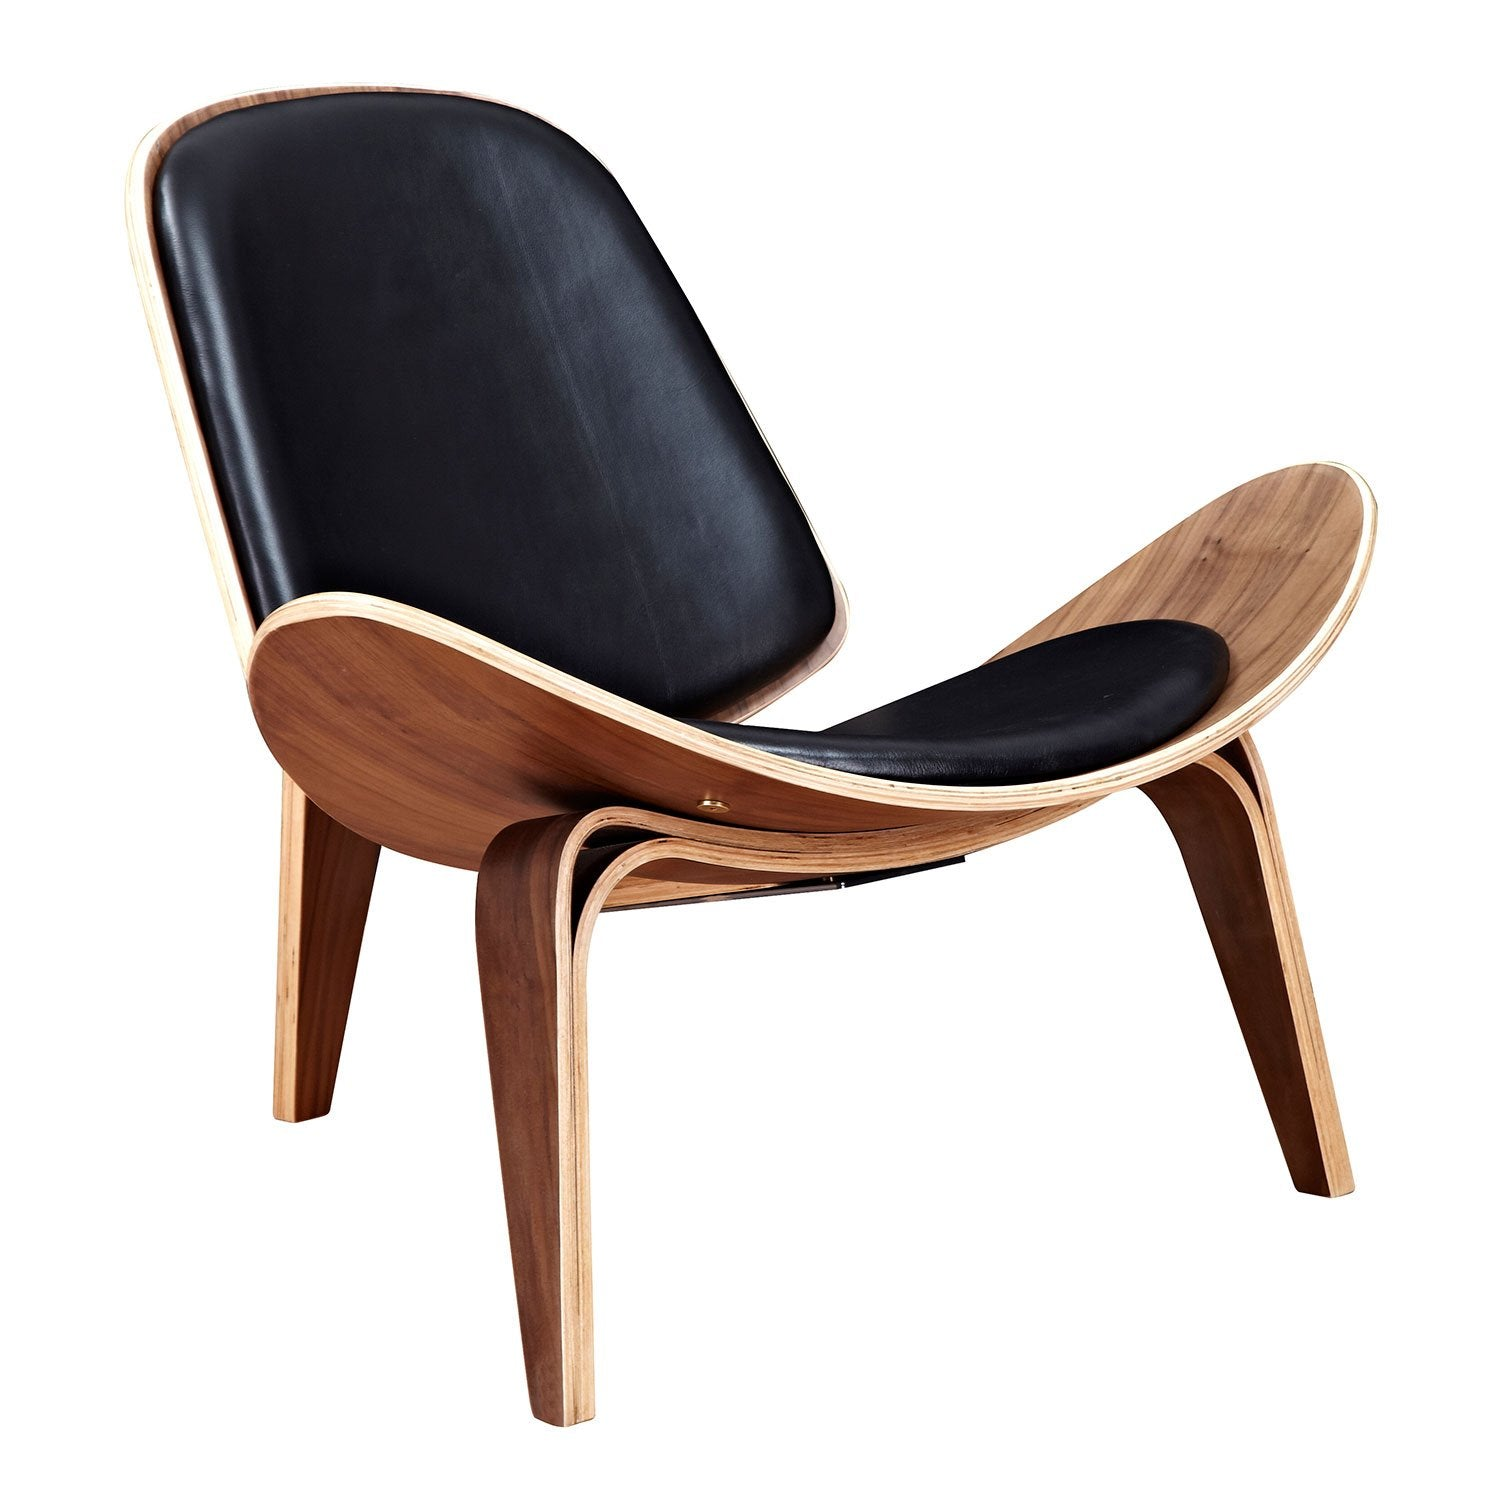 wood frame accent chairs. Shell Chair With Milano Black Leather And Walnut Finish Wood Frame-Accent Chairs-Alan Frame Accent Chairs